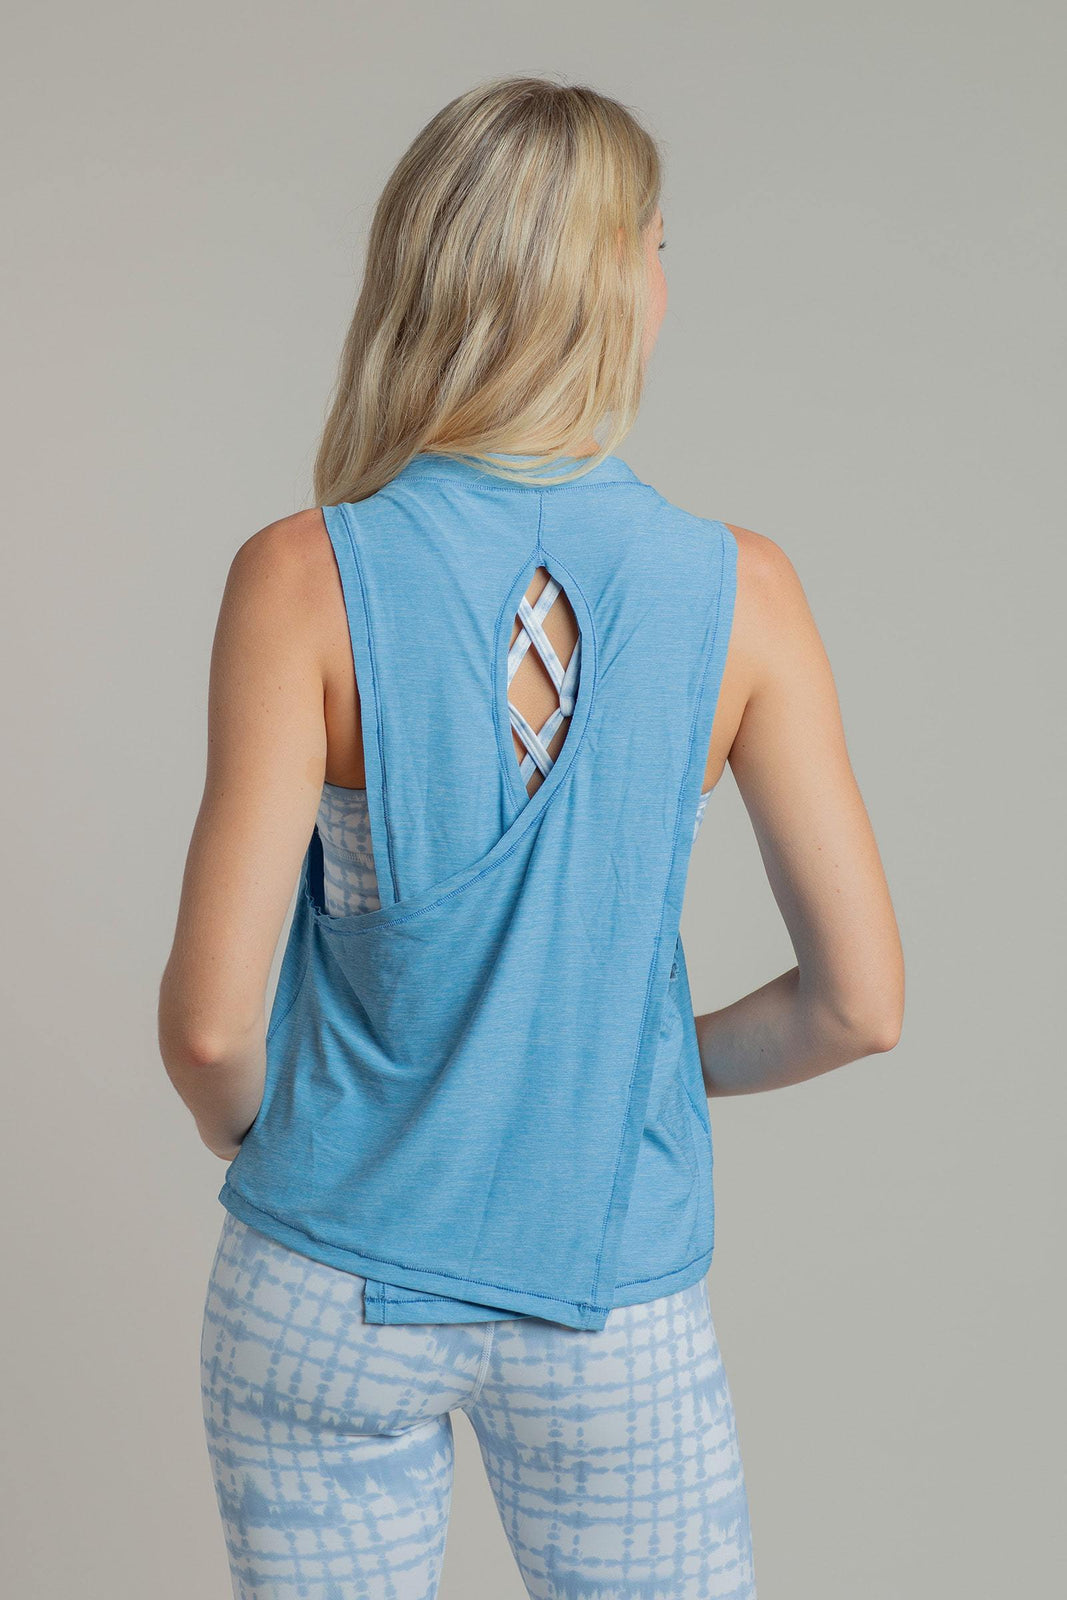 Wild Child Tank in Blue